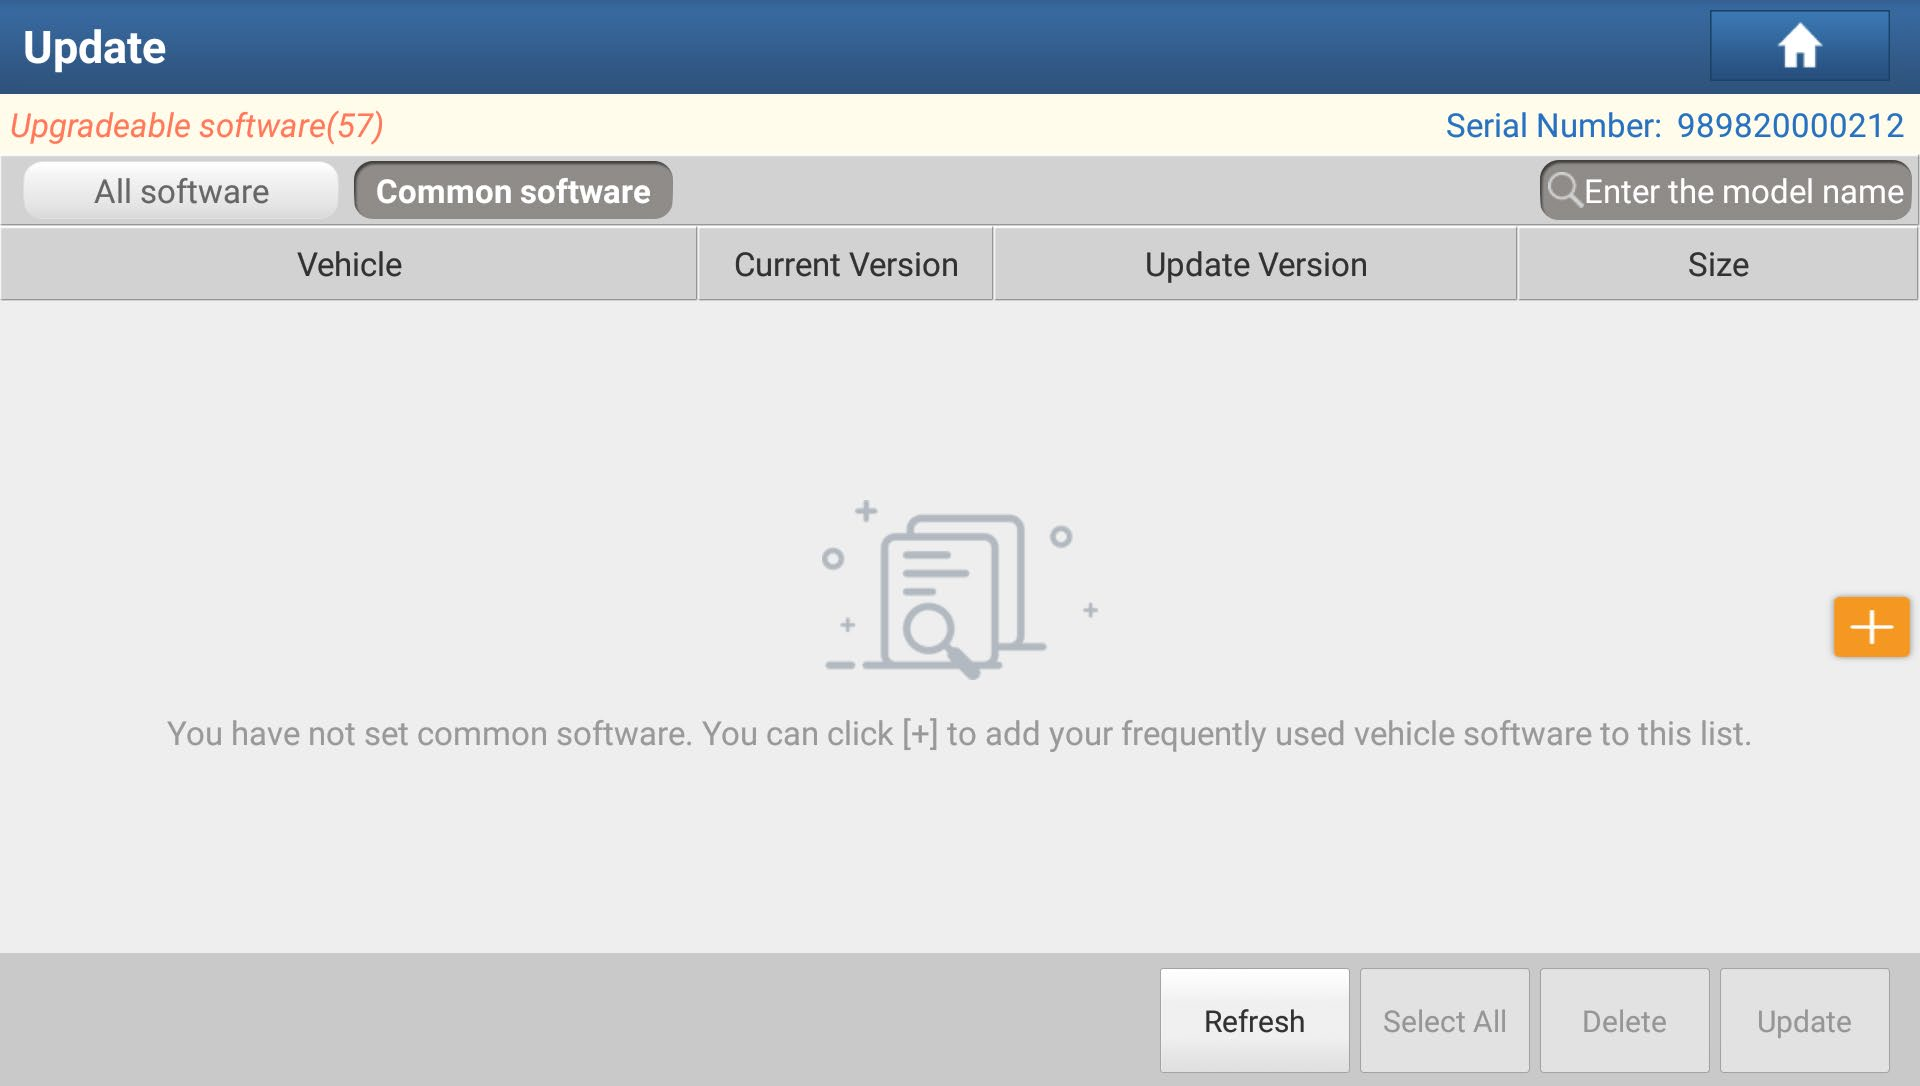 Launch X431 PAD V User Instruction Software Update & Renew Subscription3